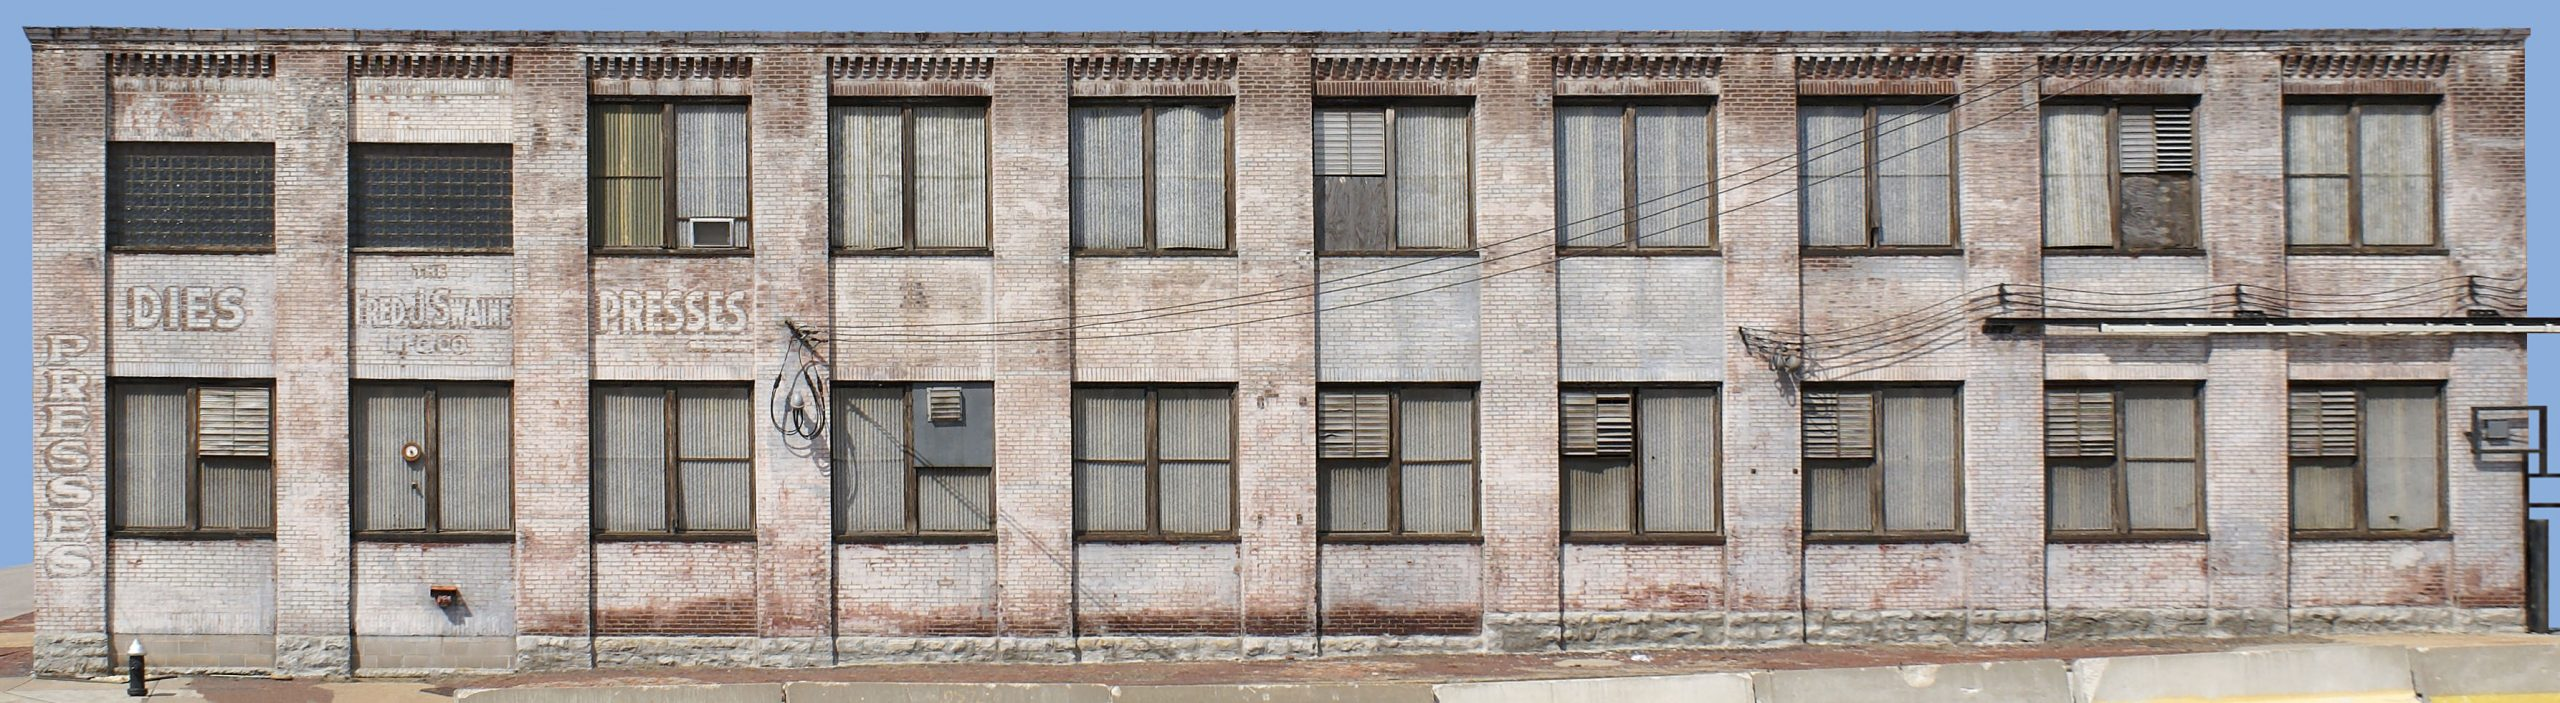 Industrial And Warehouse Background Buildings | Photographic